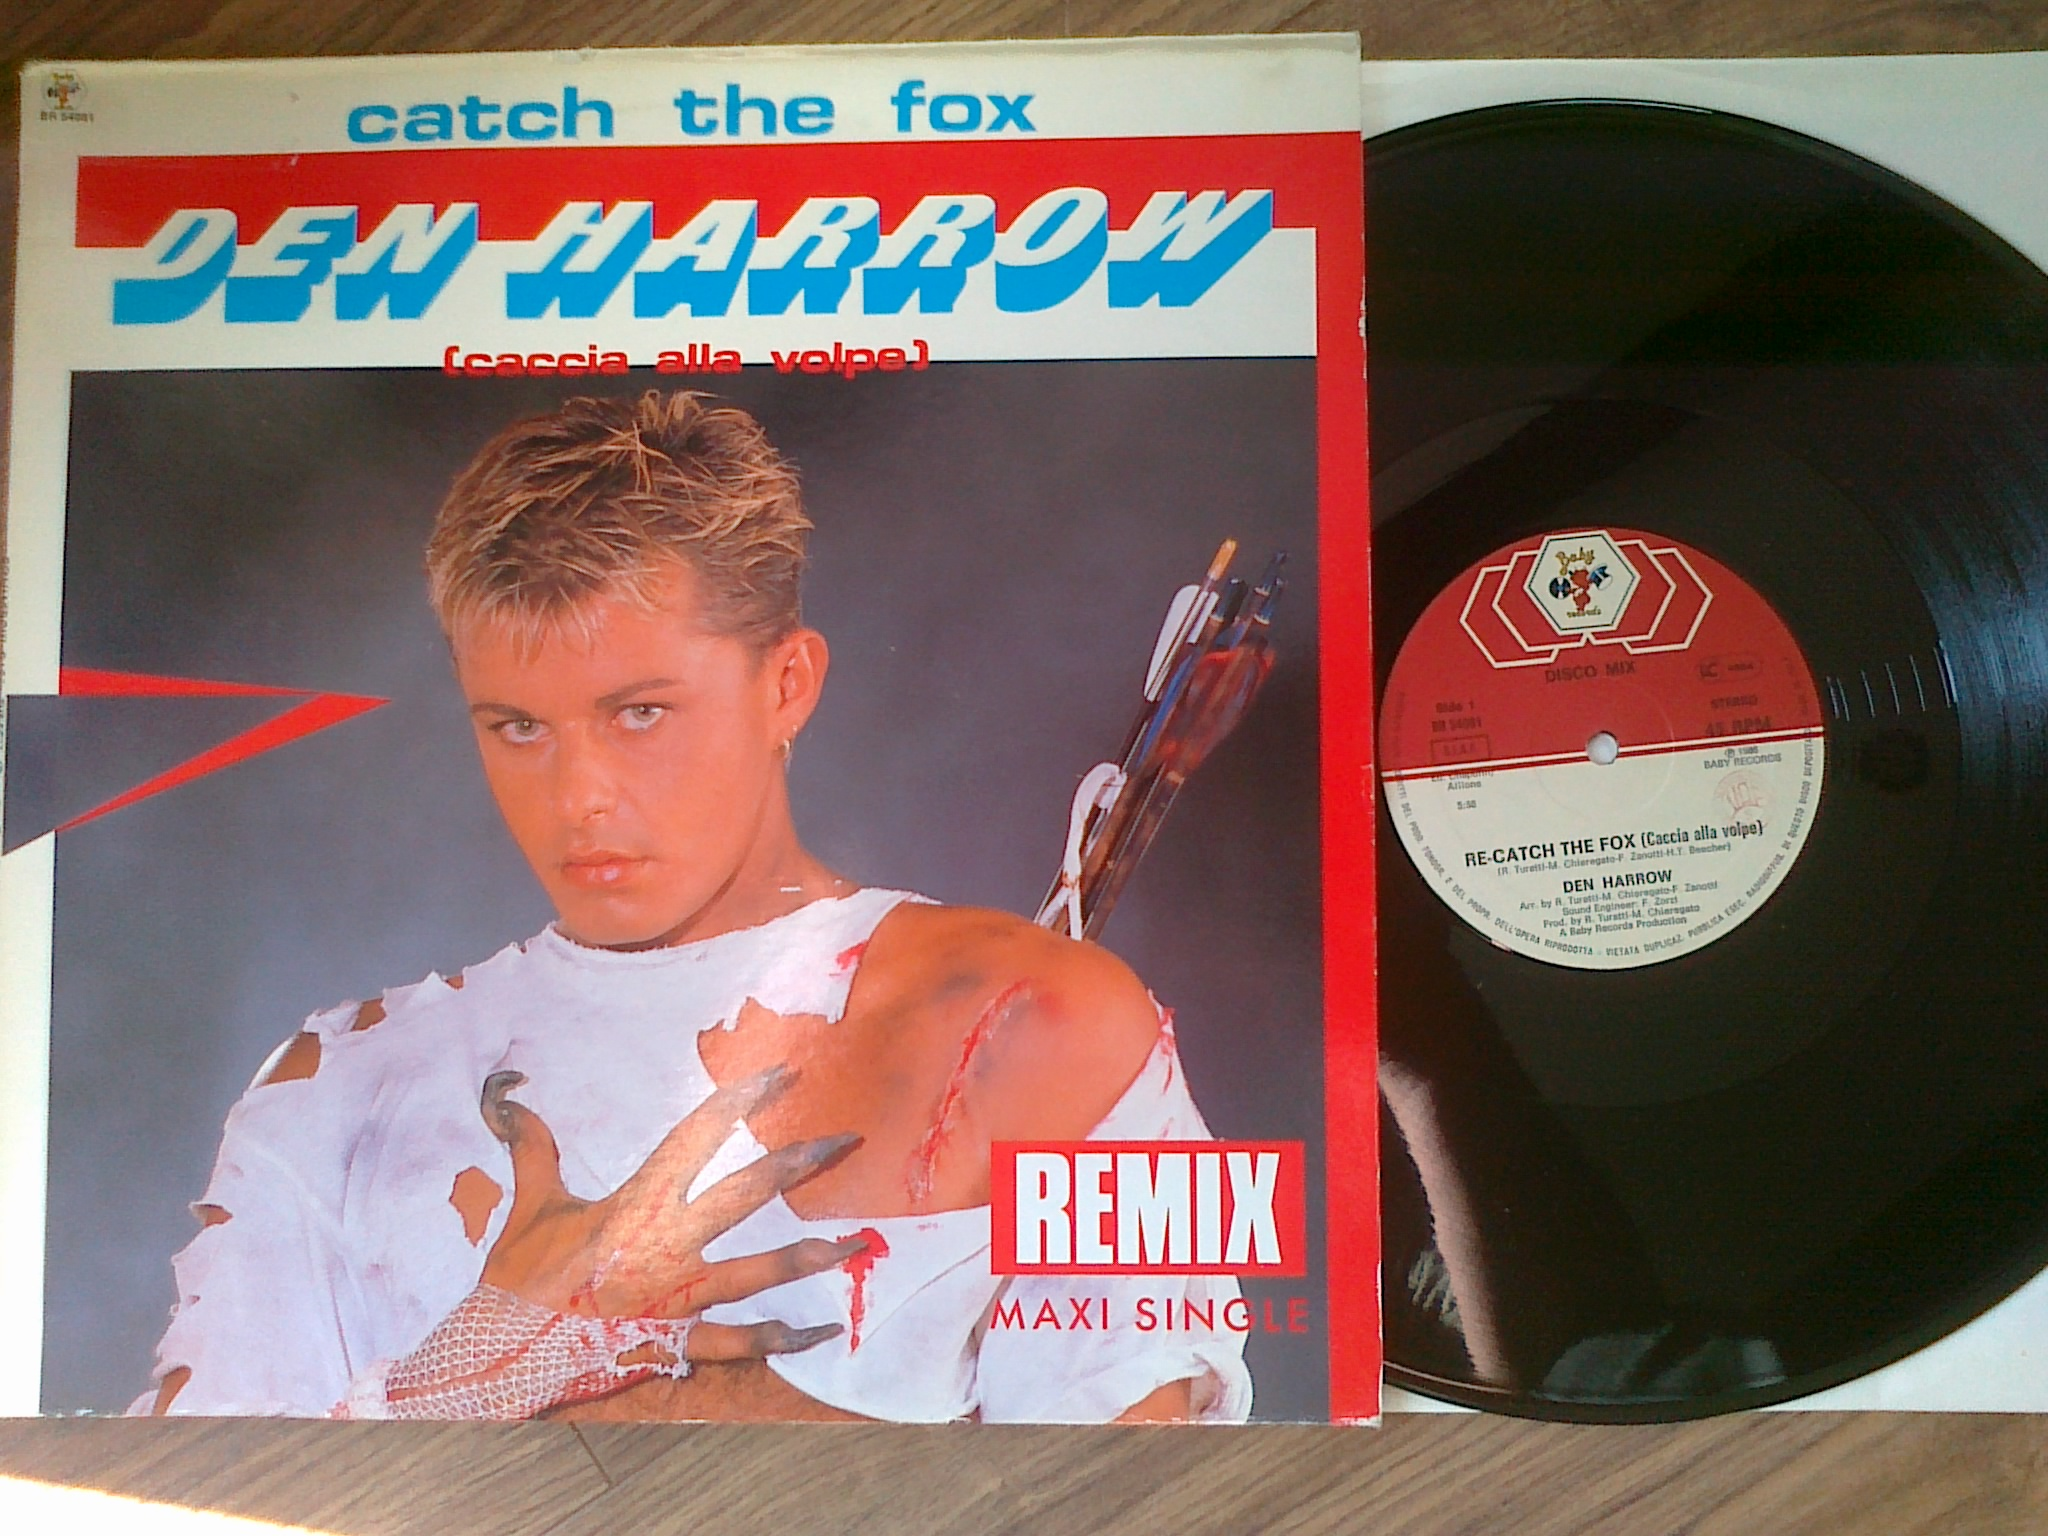 Den Harrow ‎- Catch The Fox (Caccia Alla Volpe) (Remix)